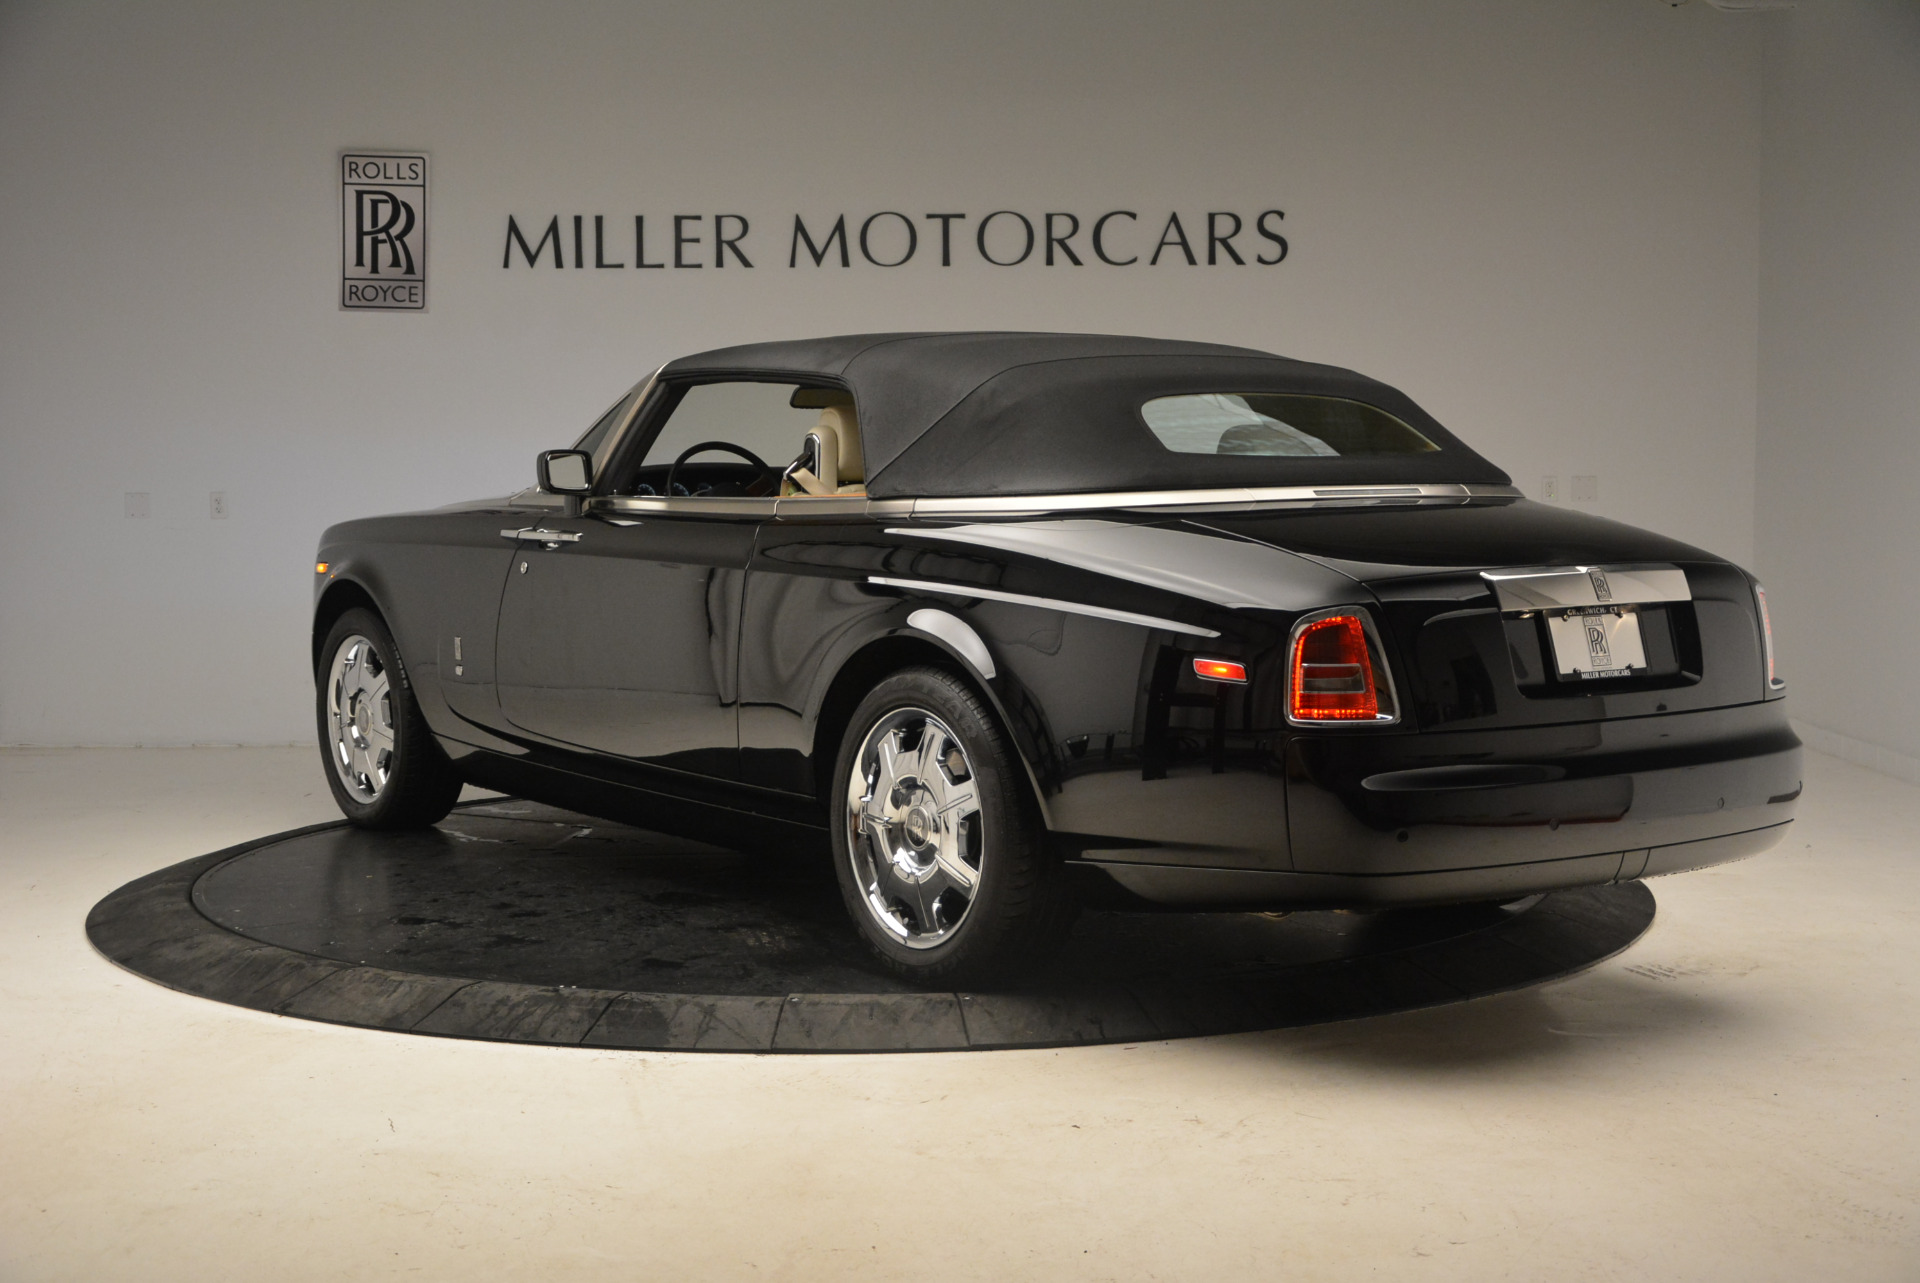 Used 2009 Rolls-Royce Phantom Drophead Coupe  For Sale In Greenwich, CT. Alfa Romeo of Greenwich, 7296 1792_p17